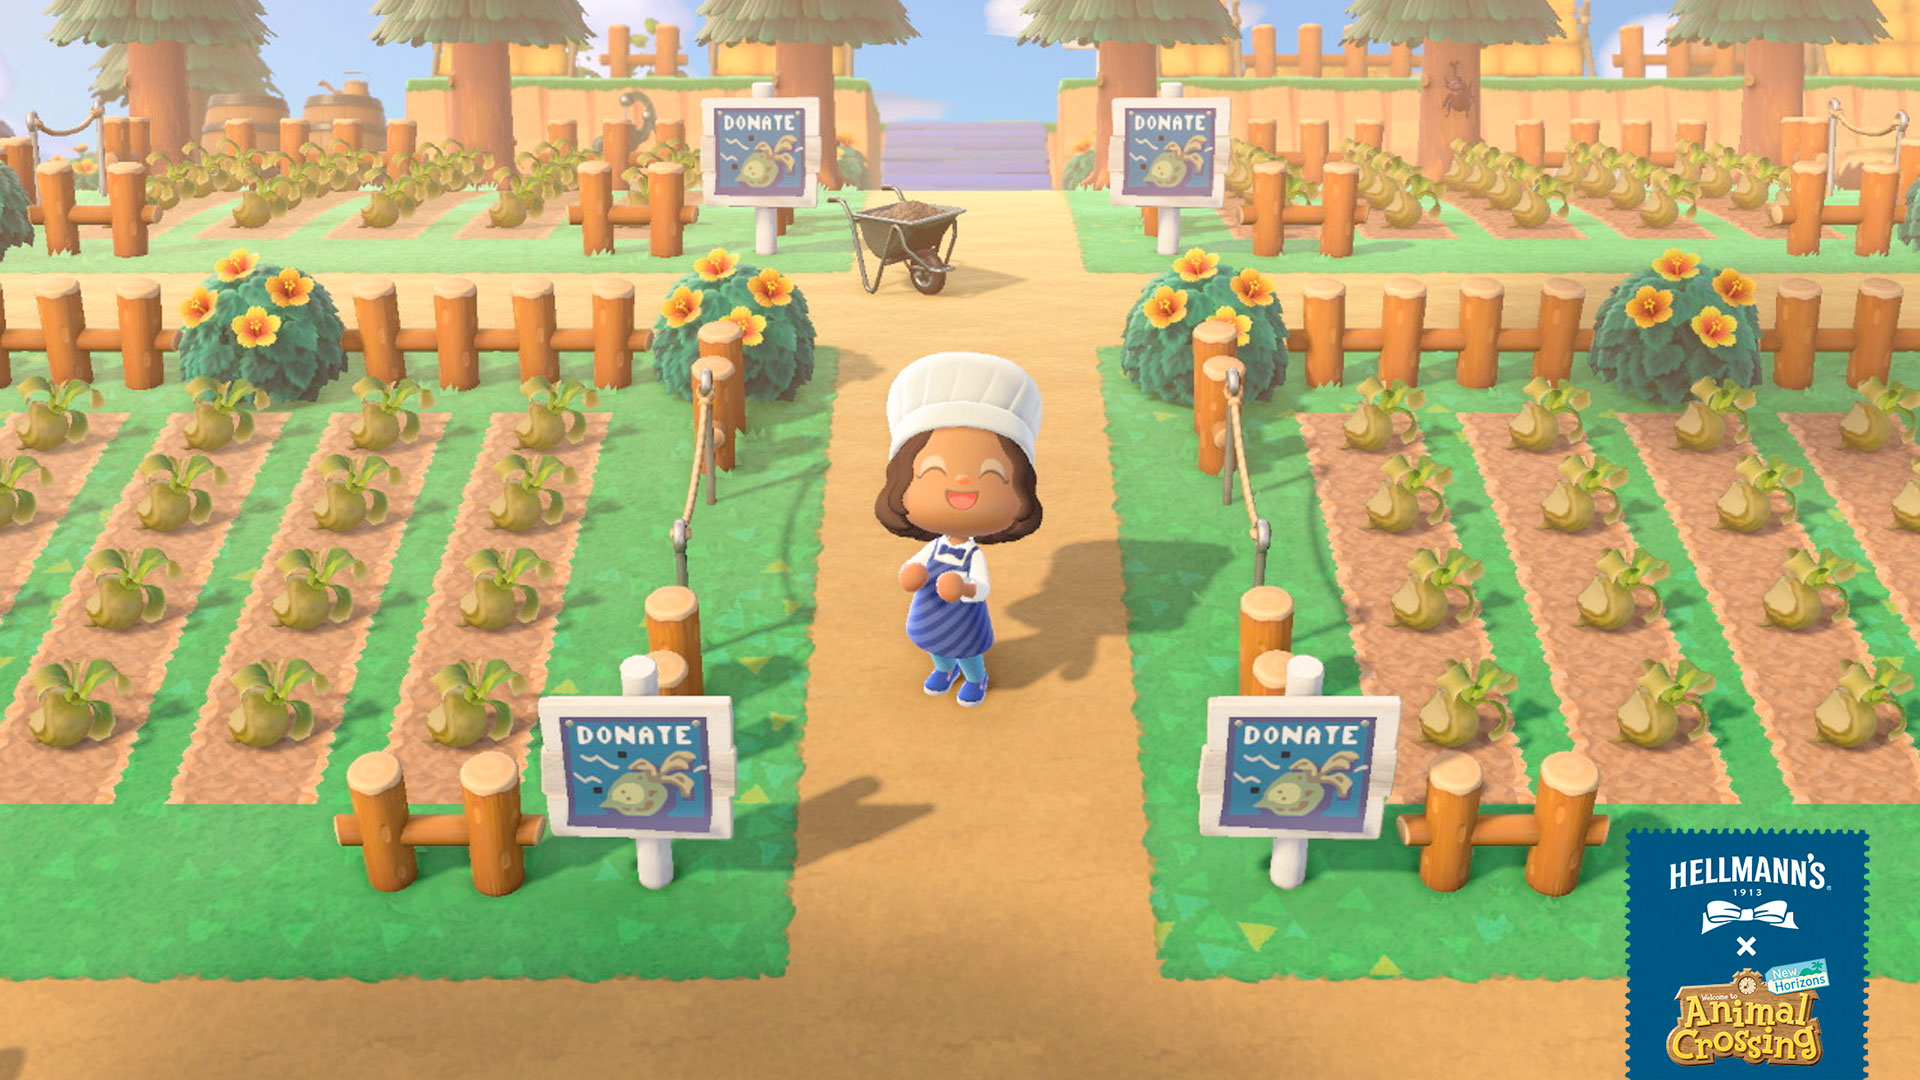 Smiling Animal Crossing character standing next to numerous donated, rotting turnips.